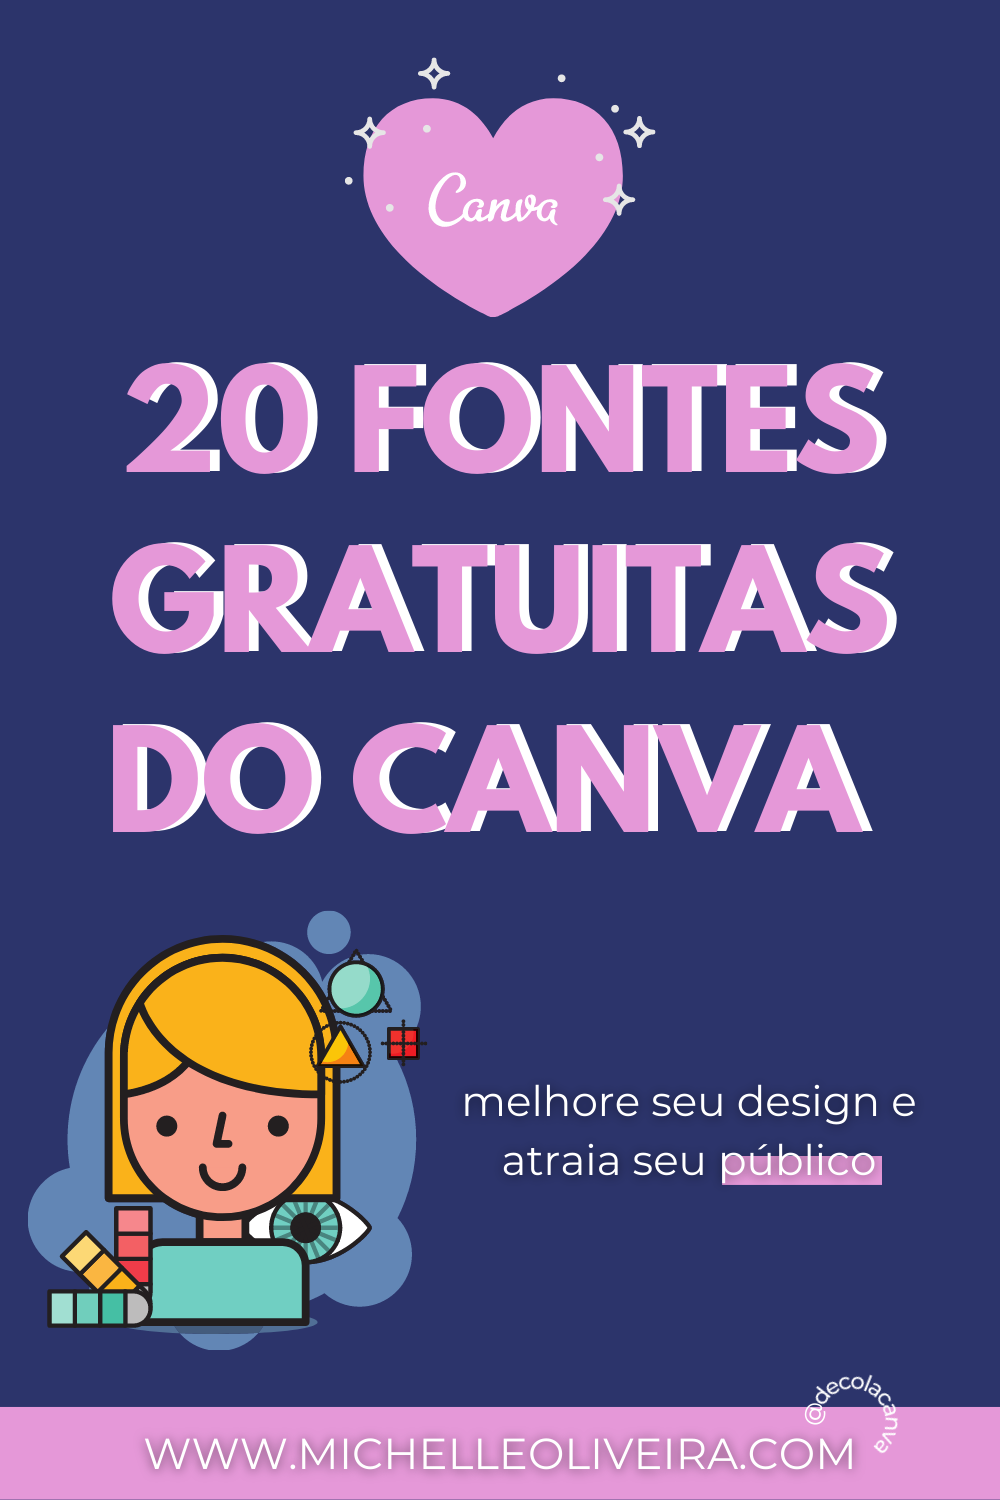 20 fontes gratuitas do canva